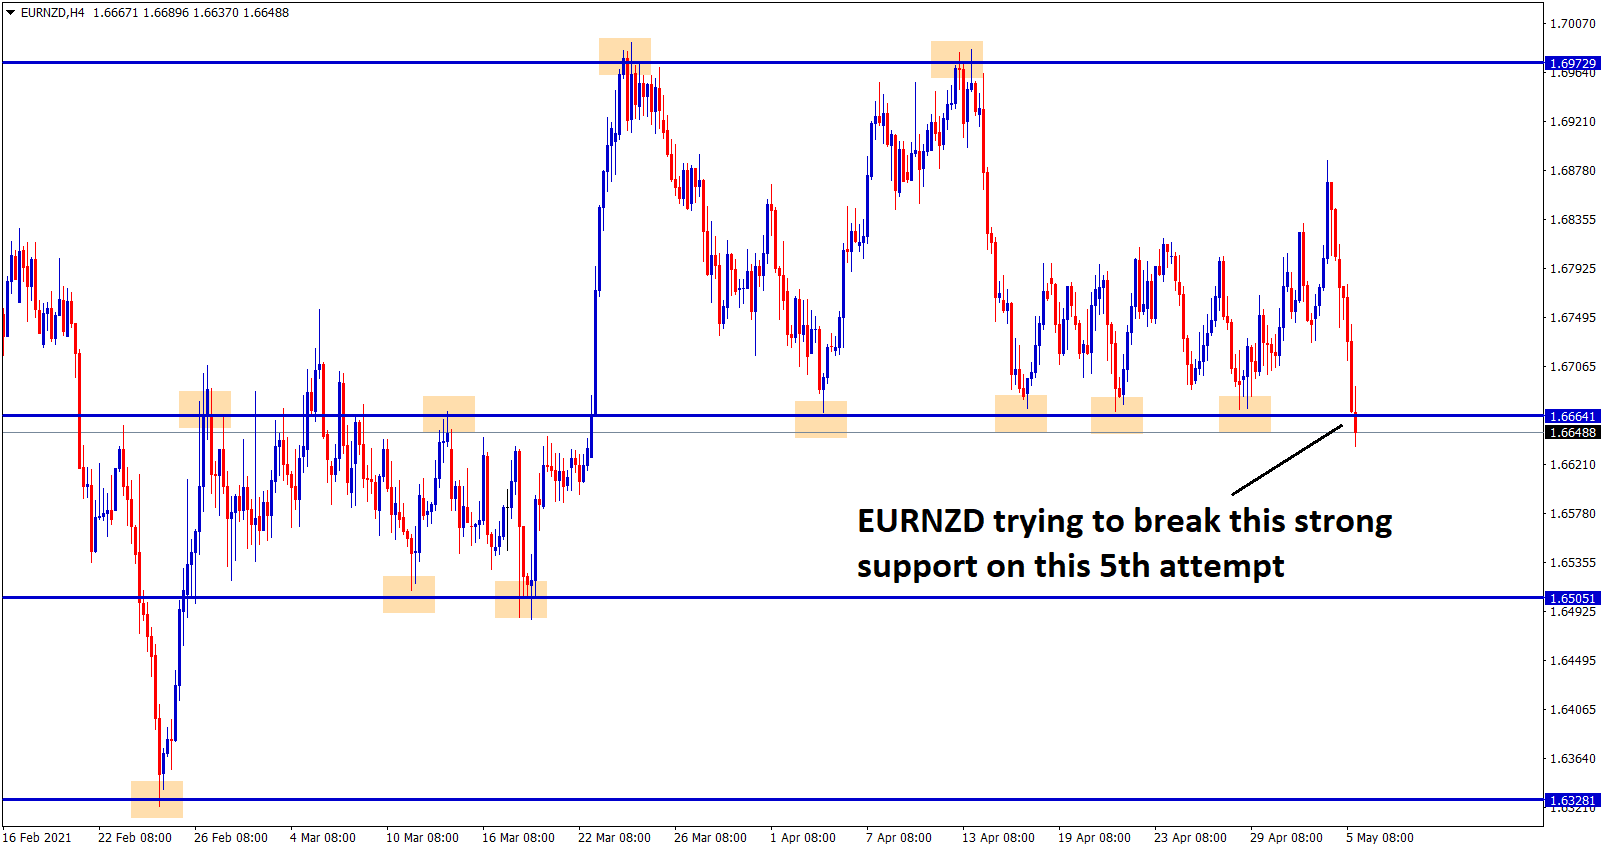 eurnzd trying to break the support zone